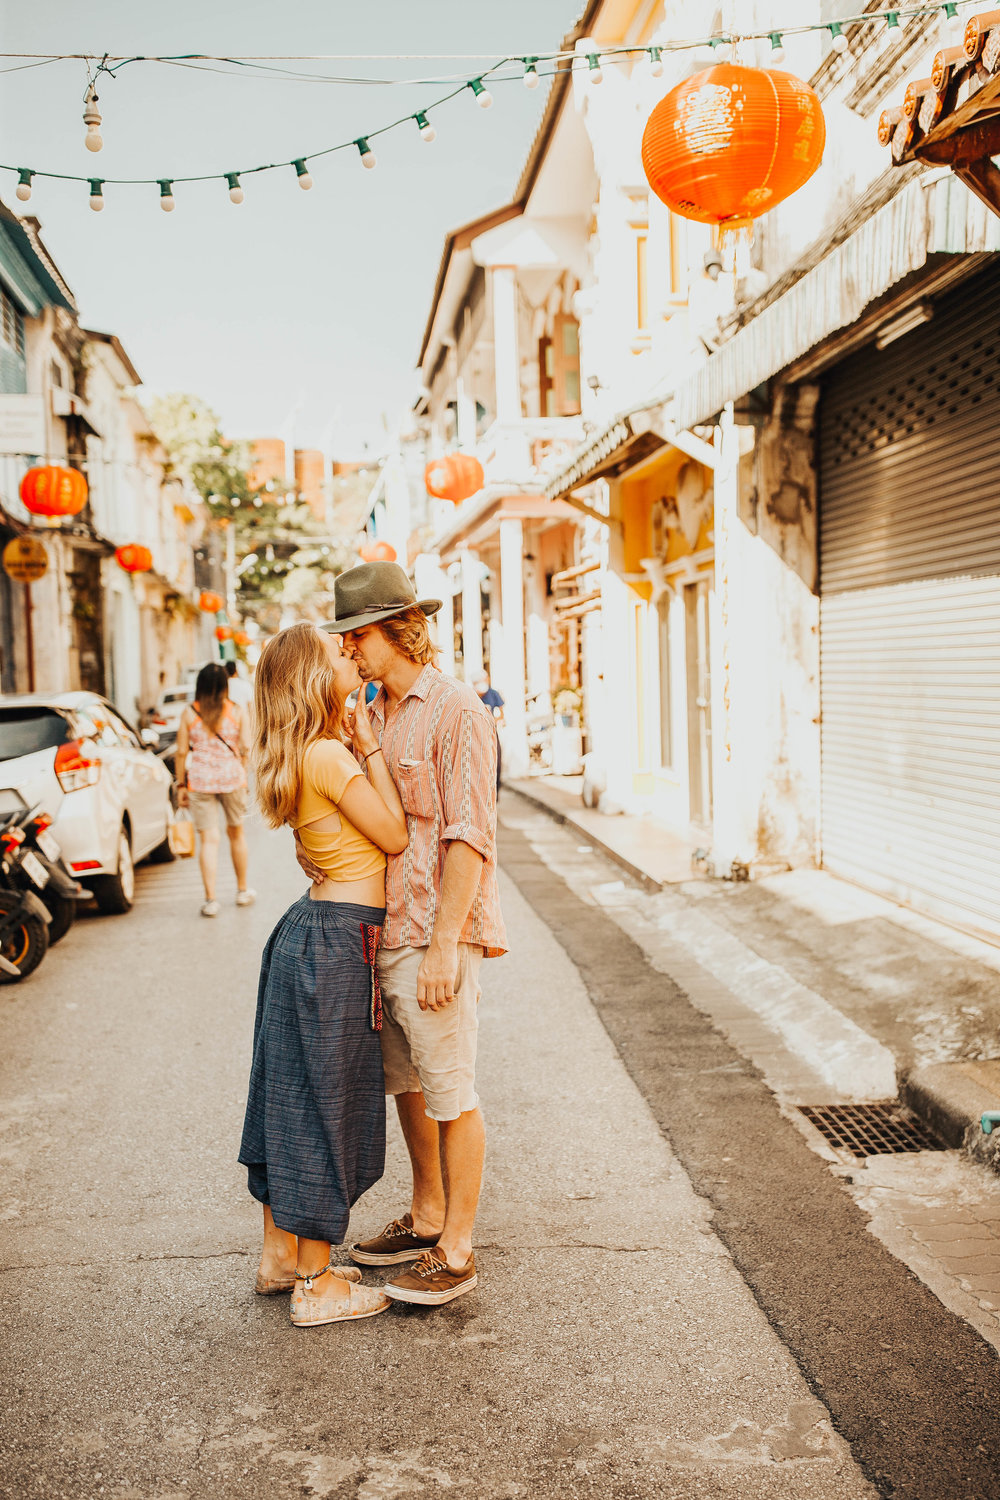 Julie and Will Old Town Phuket Couples Session 18.jpg